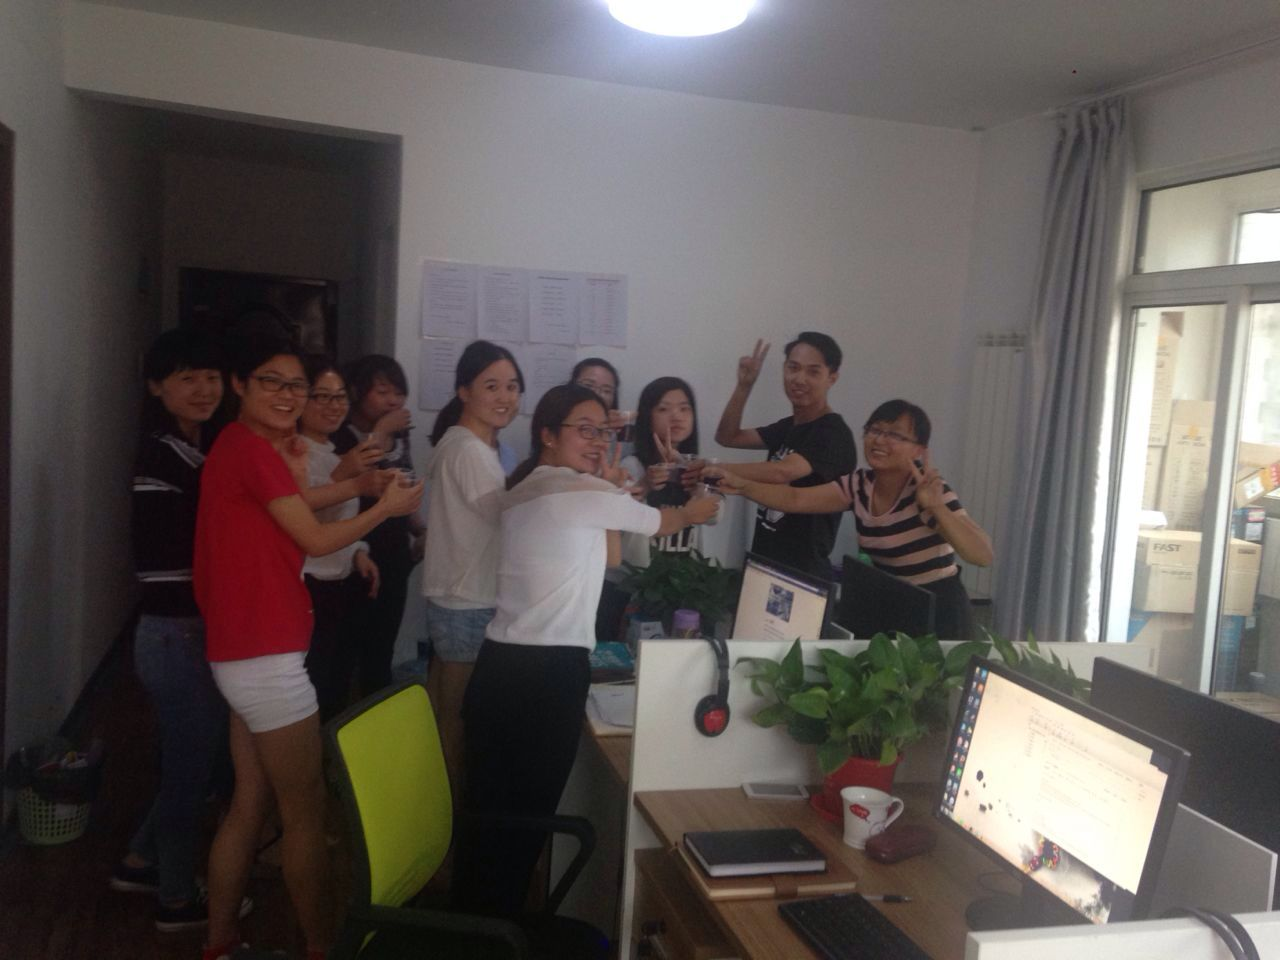 12 colleagues with Red Wine